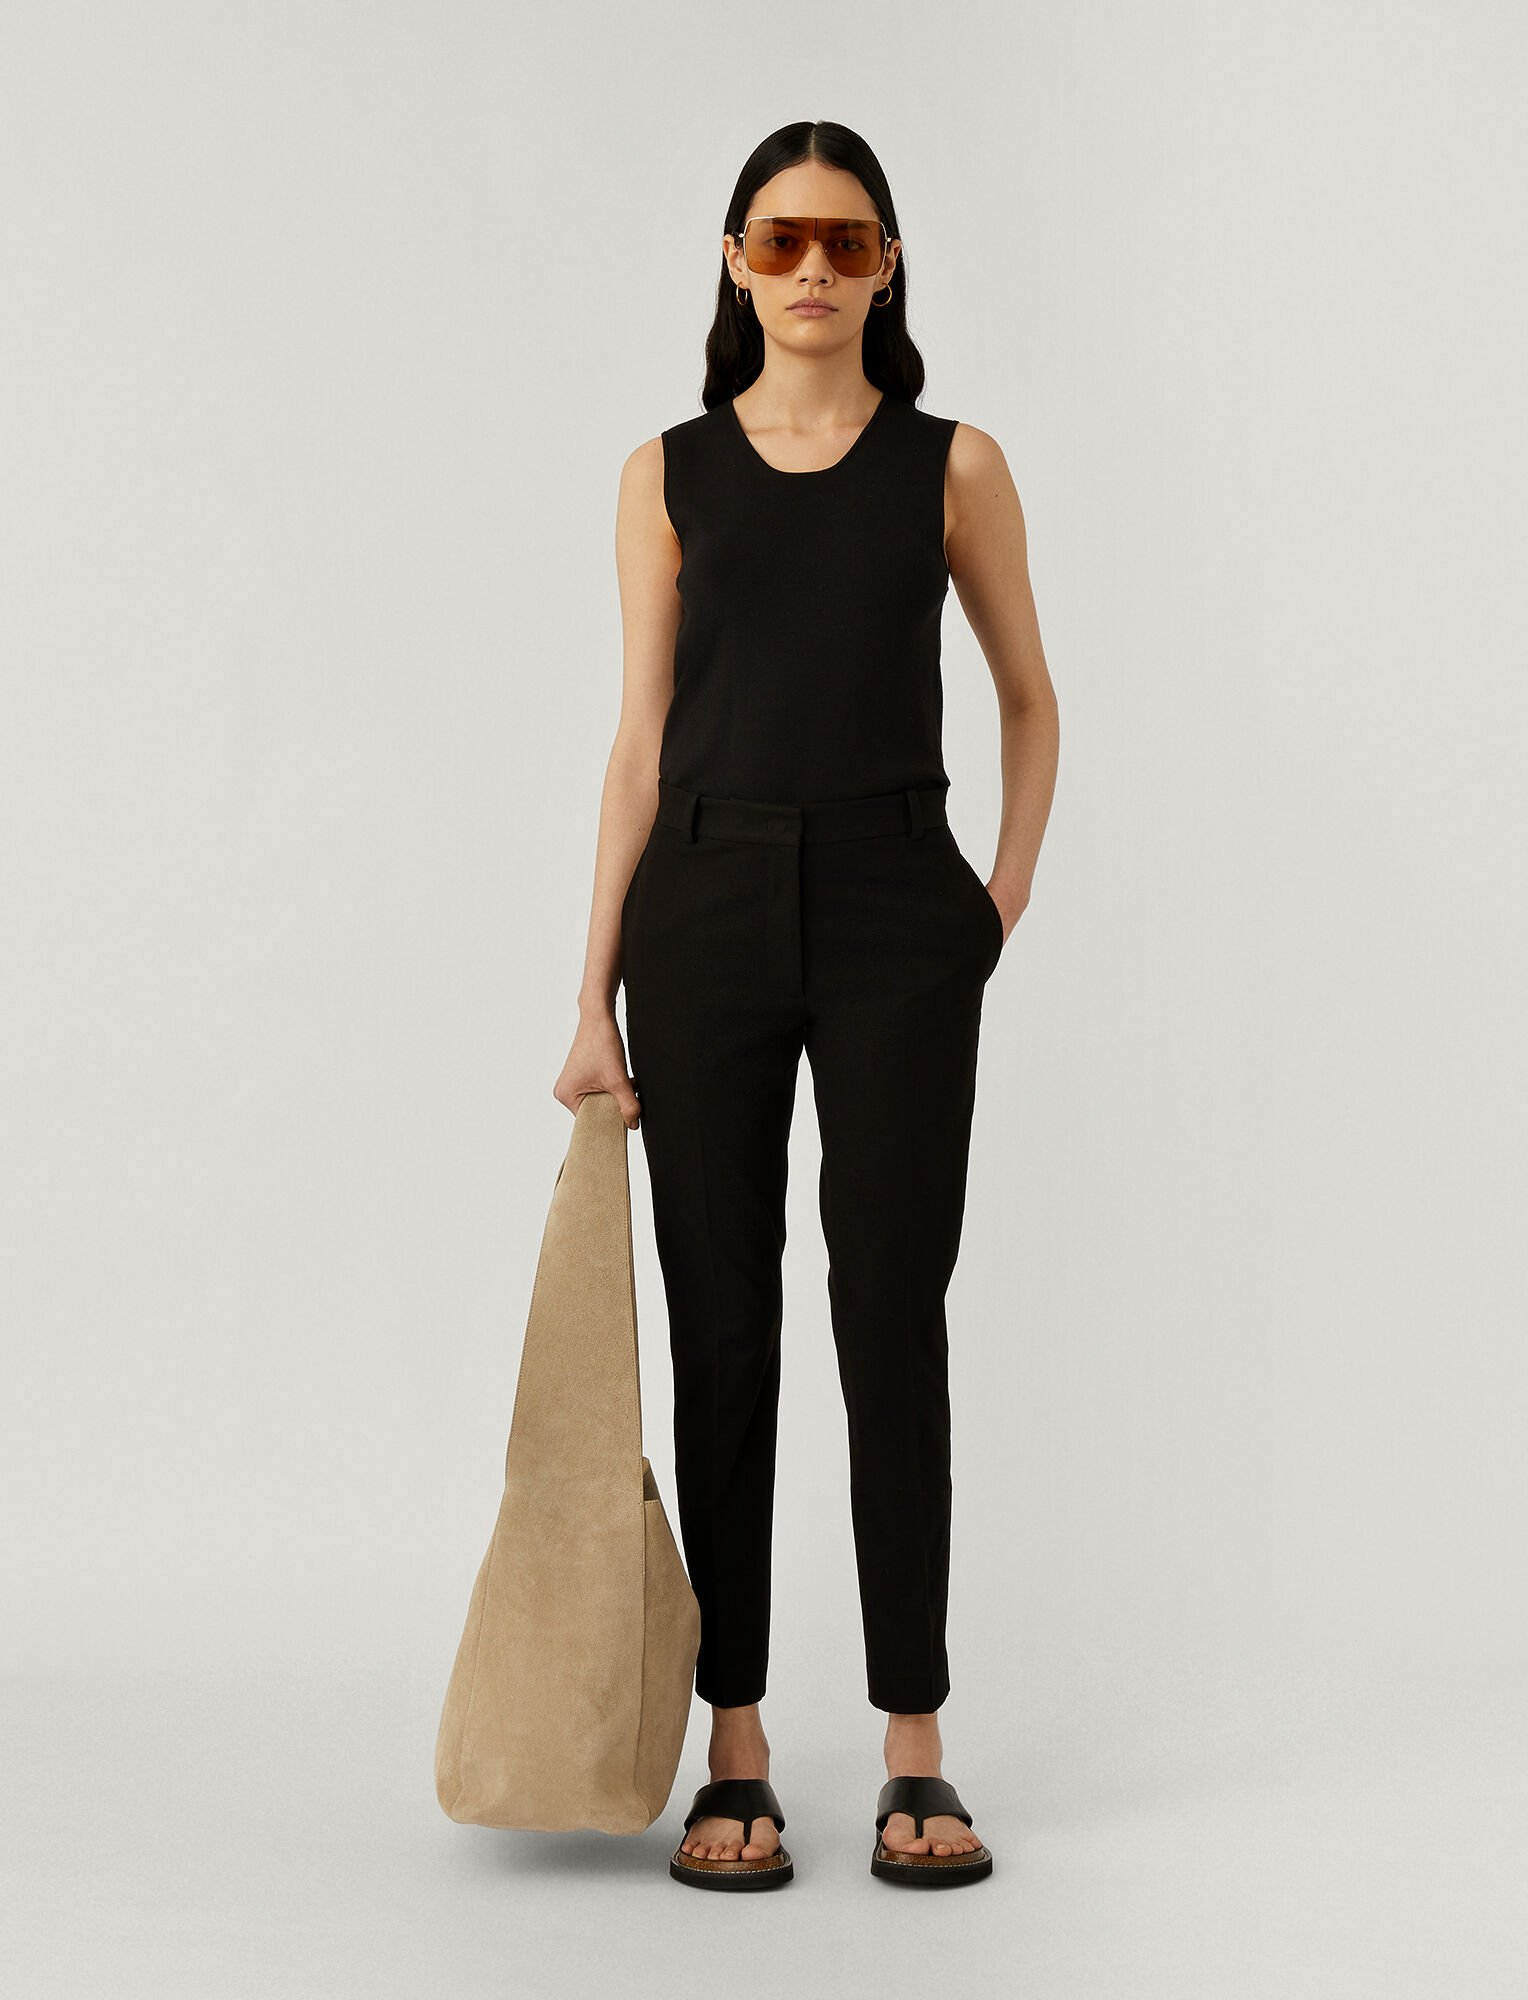 Joseph, Zoom Gabardine Stretch Trousers, in BLACK